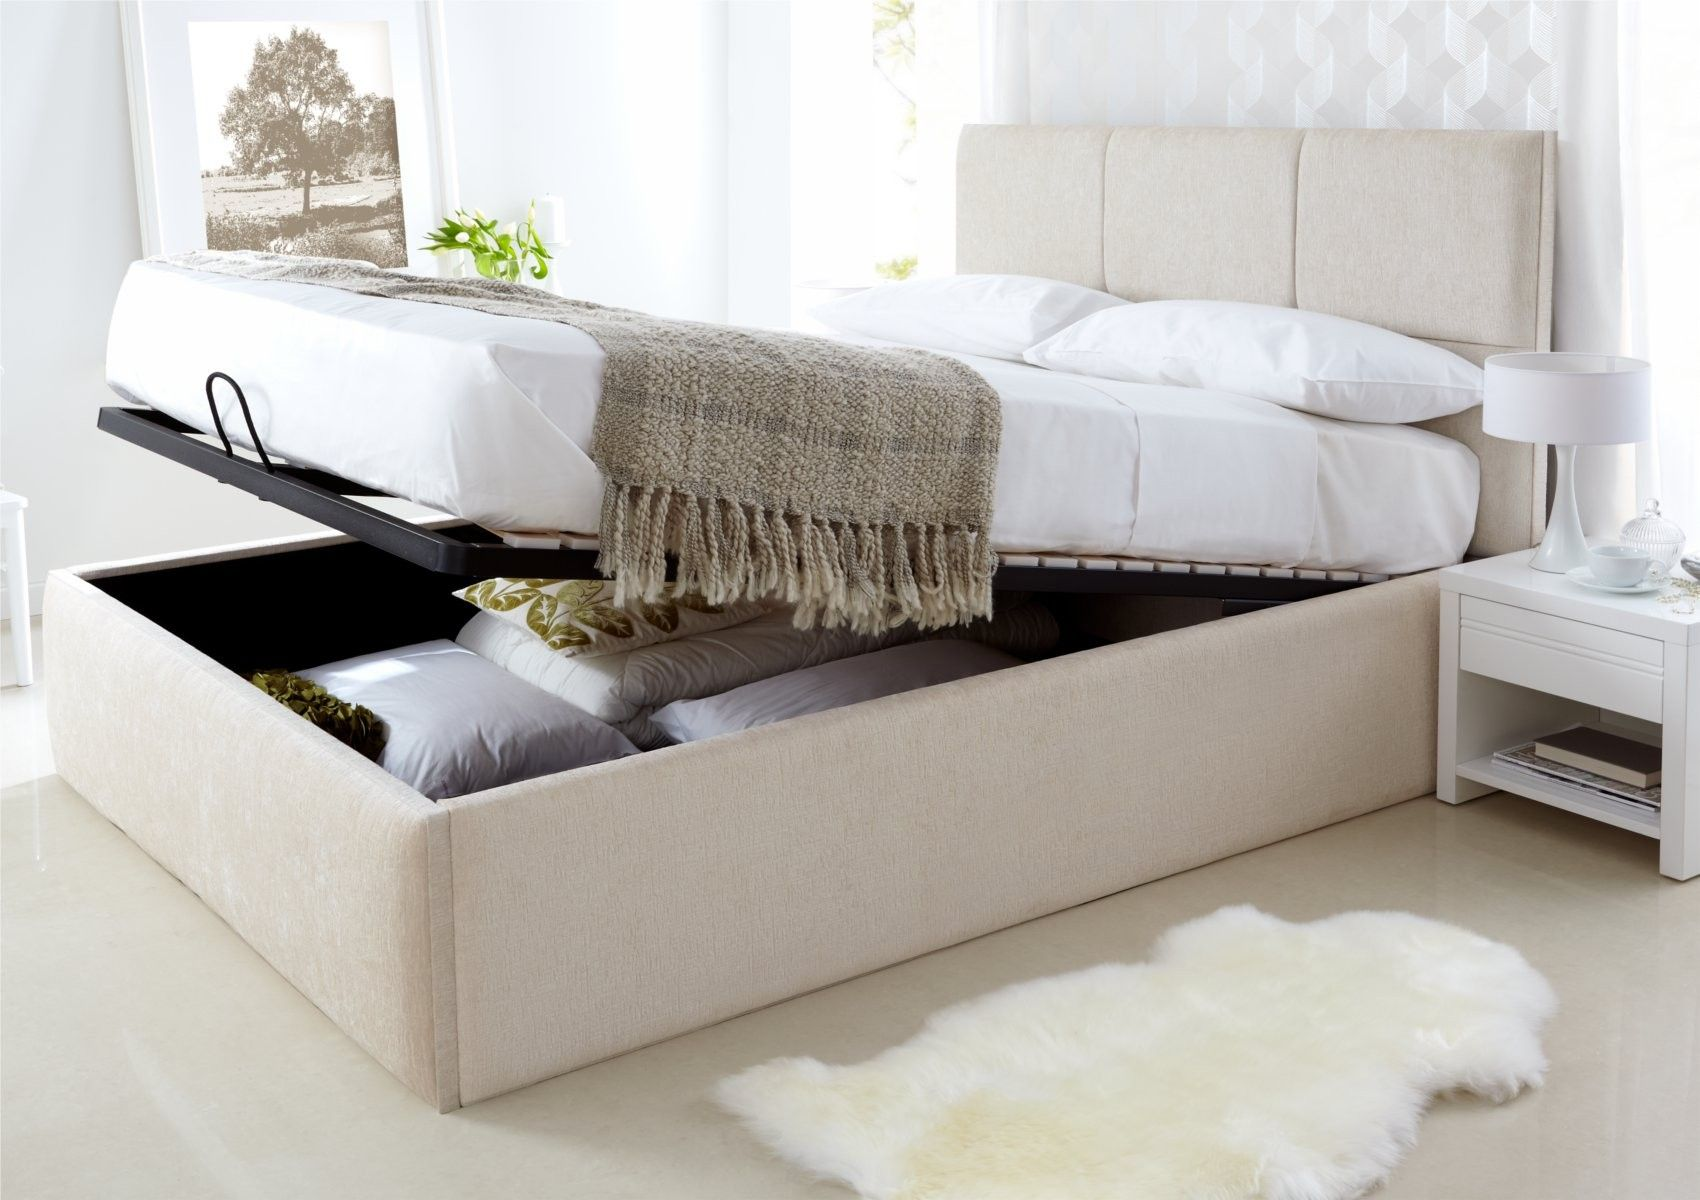 Retreat Ottoman Storage Bed Ottoman Beds Storage Beds Beds